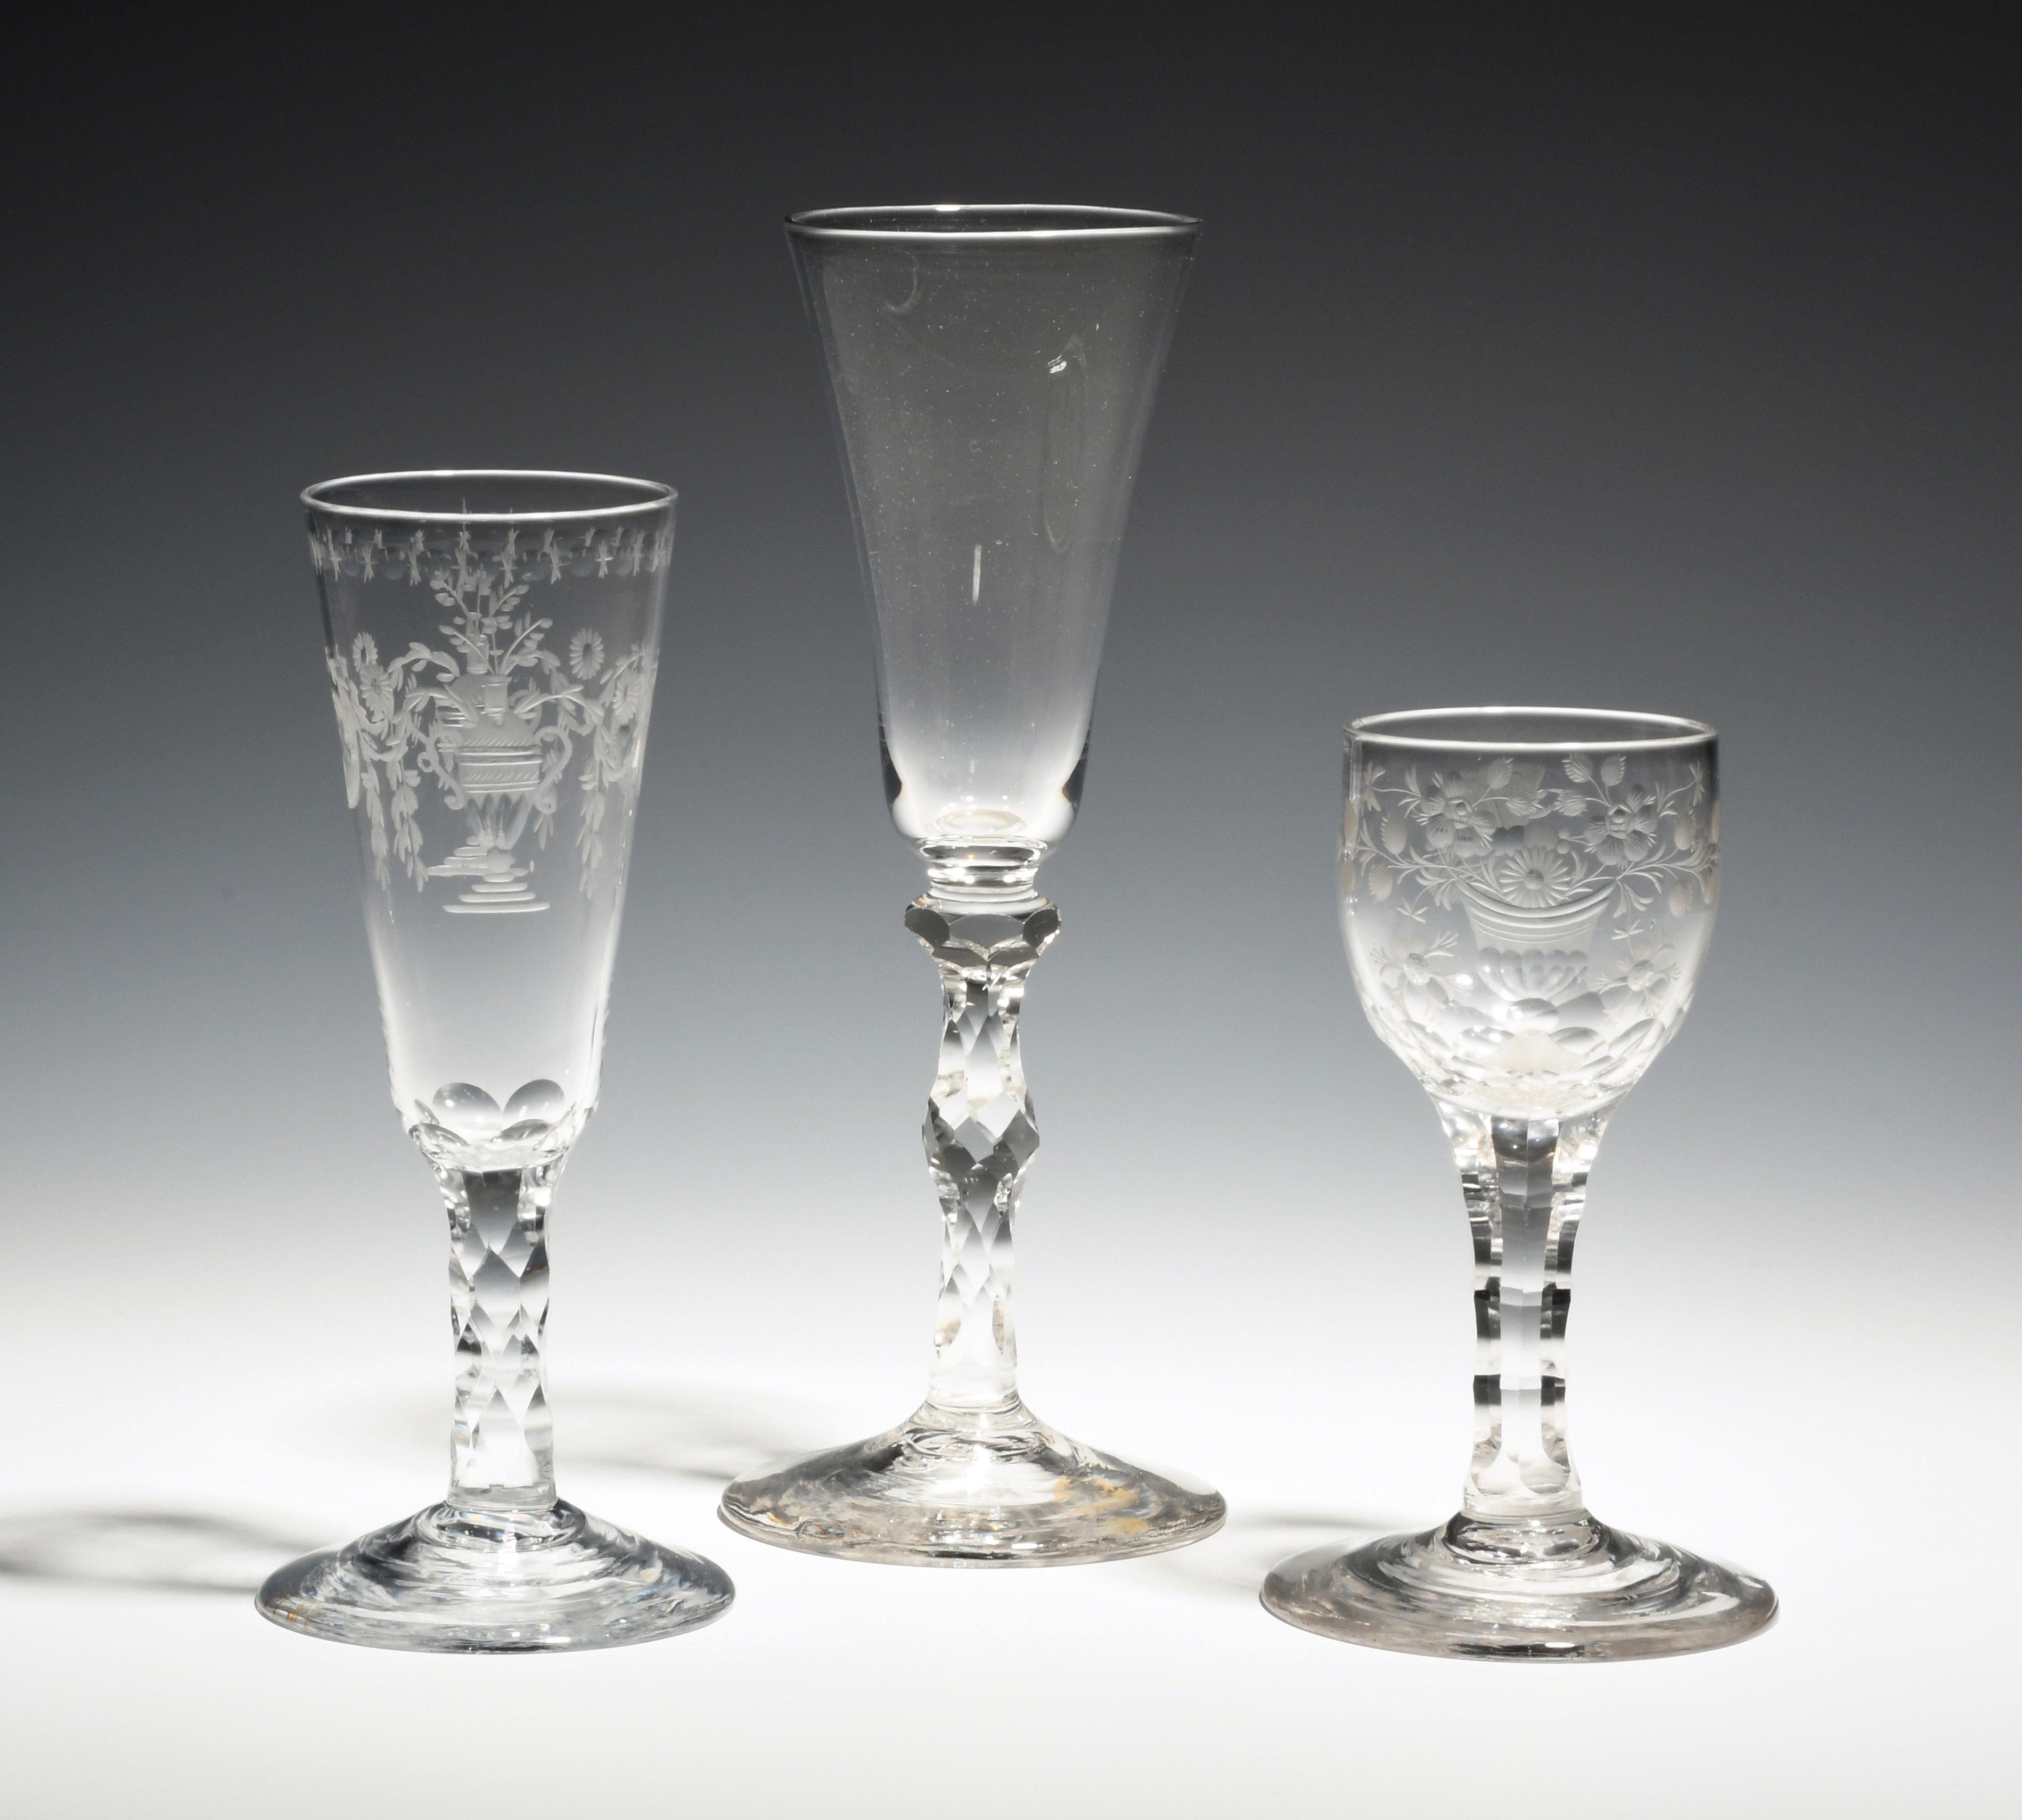 Three glasses c.1770-80, two ale glasses on faceted stems, the last a wine glass with ovoid bowl